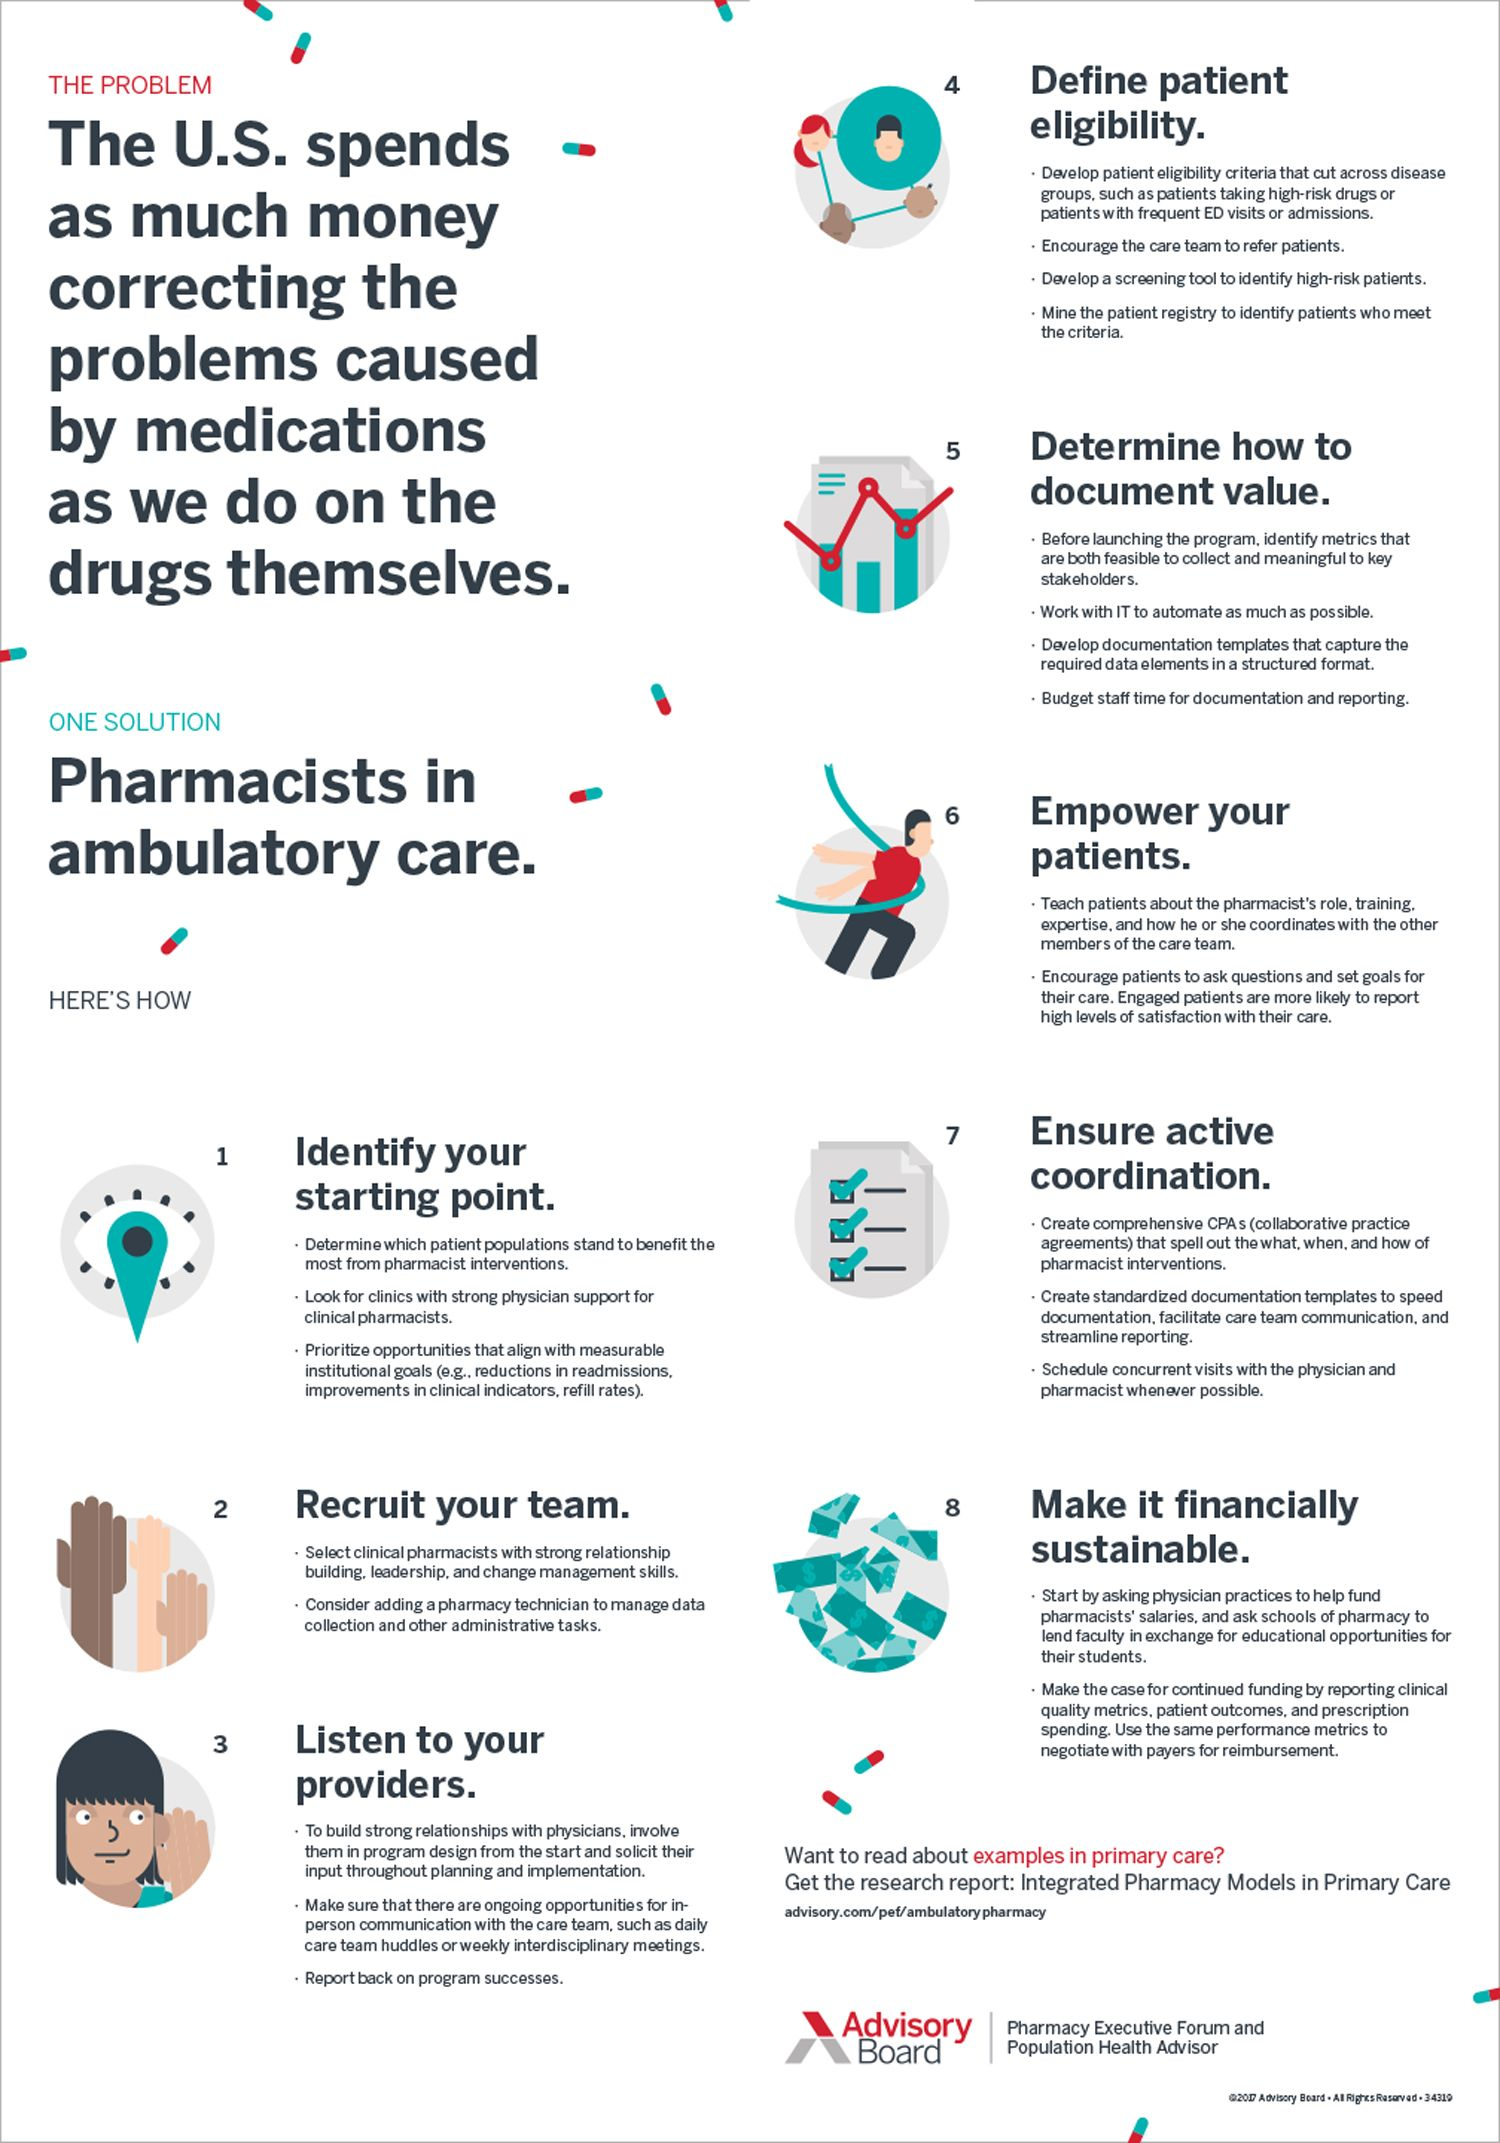 8 steps for deploying clinical pharmacists in ambulatory